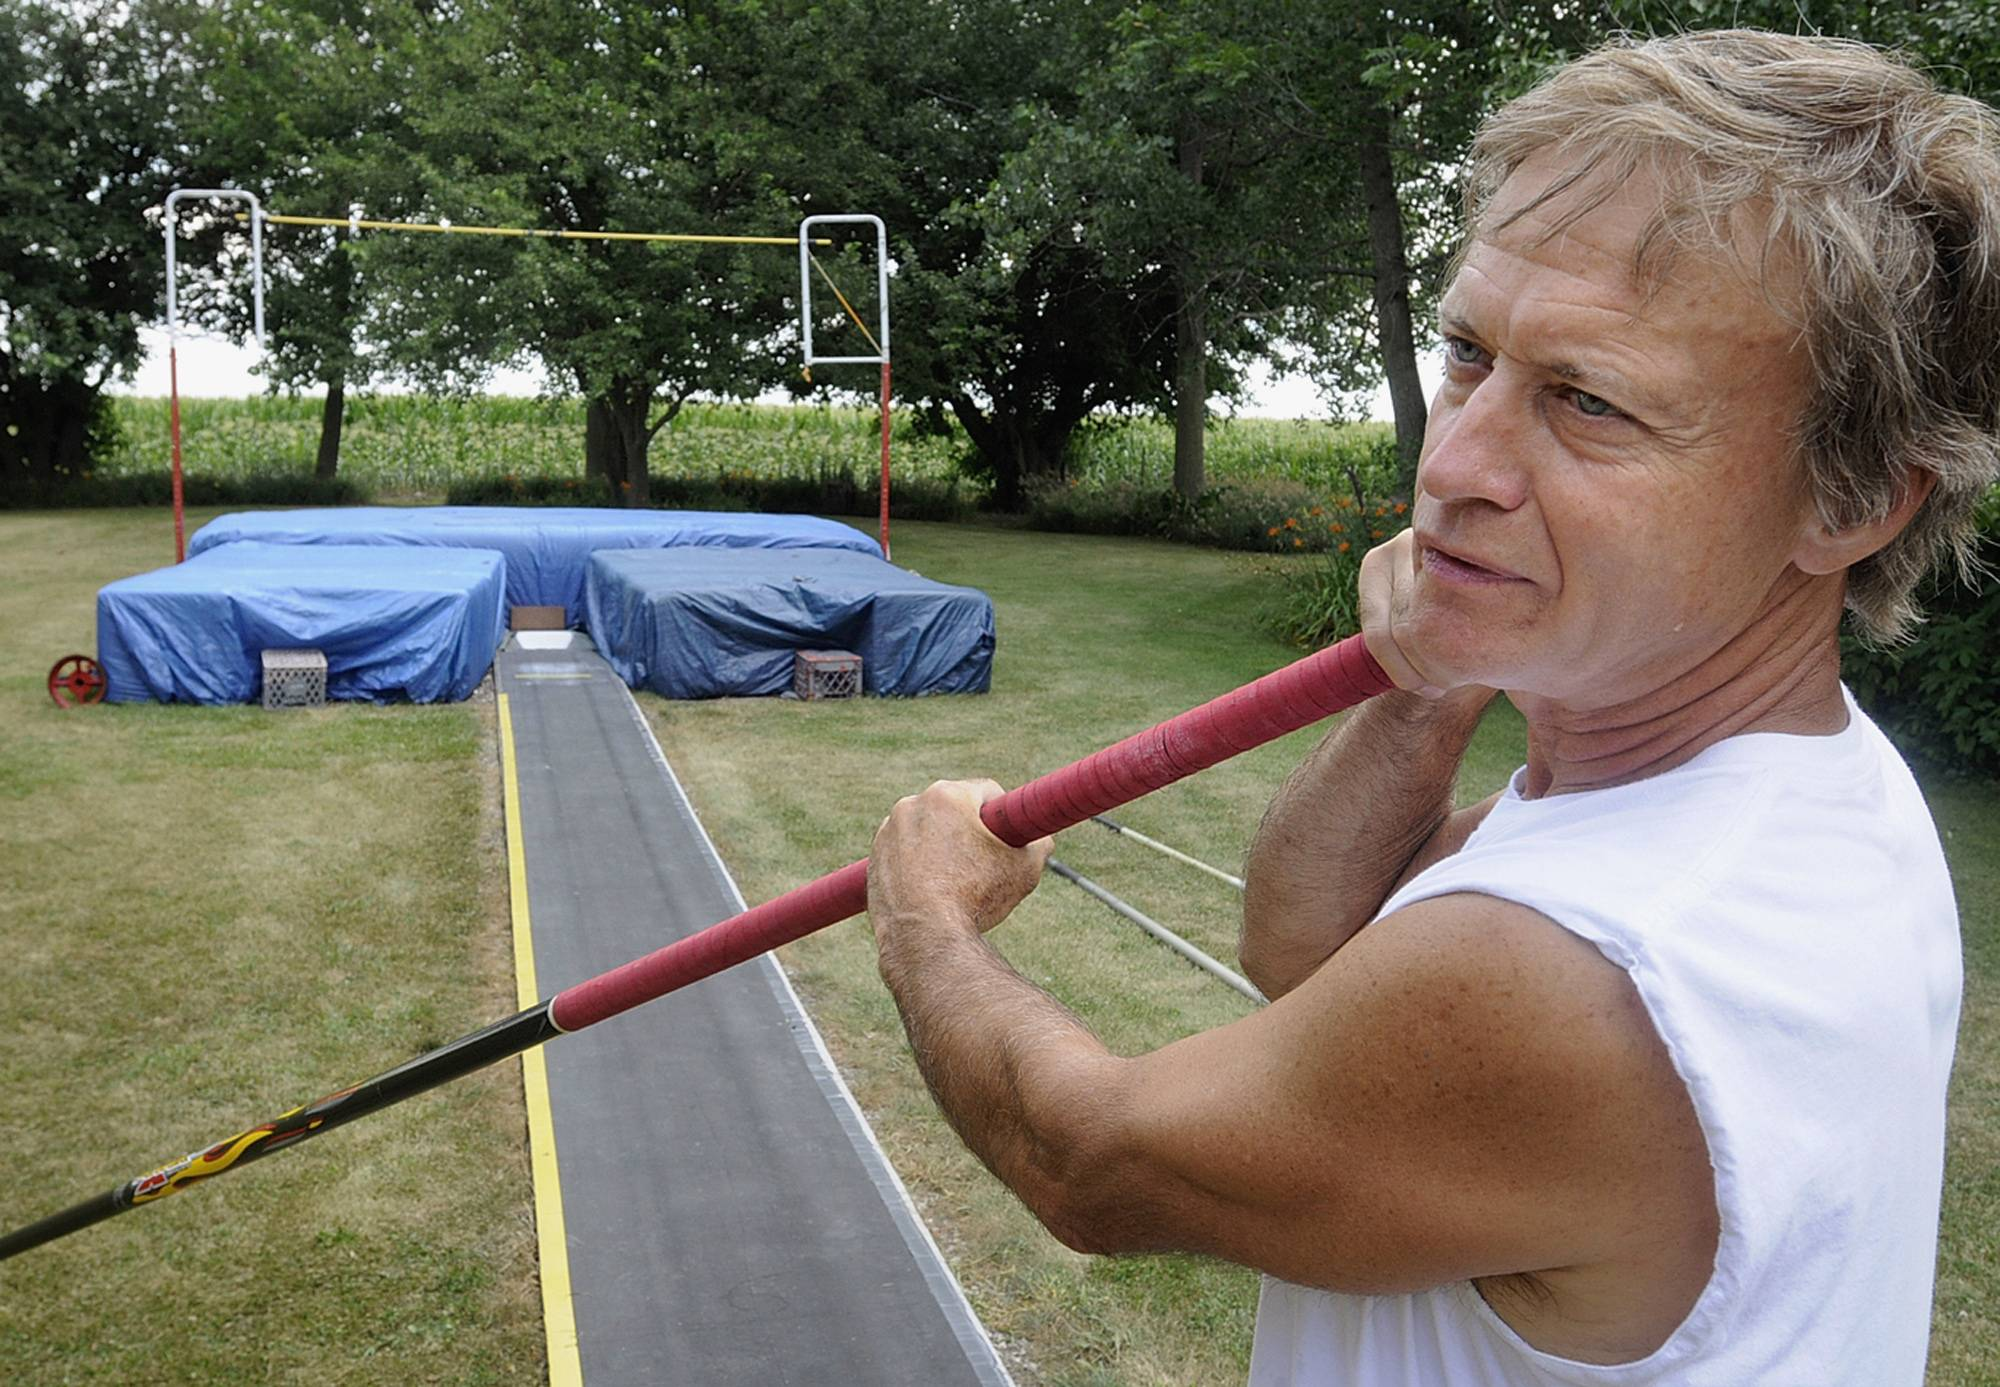 Larry LaGesse, prepares to pole vault in the backyard training center he built at his rural Chebanse, Ill., home.